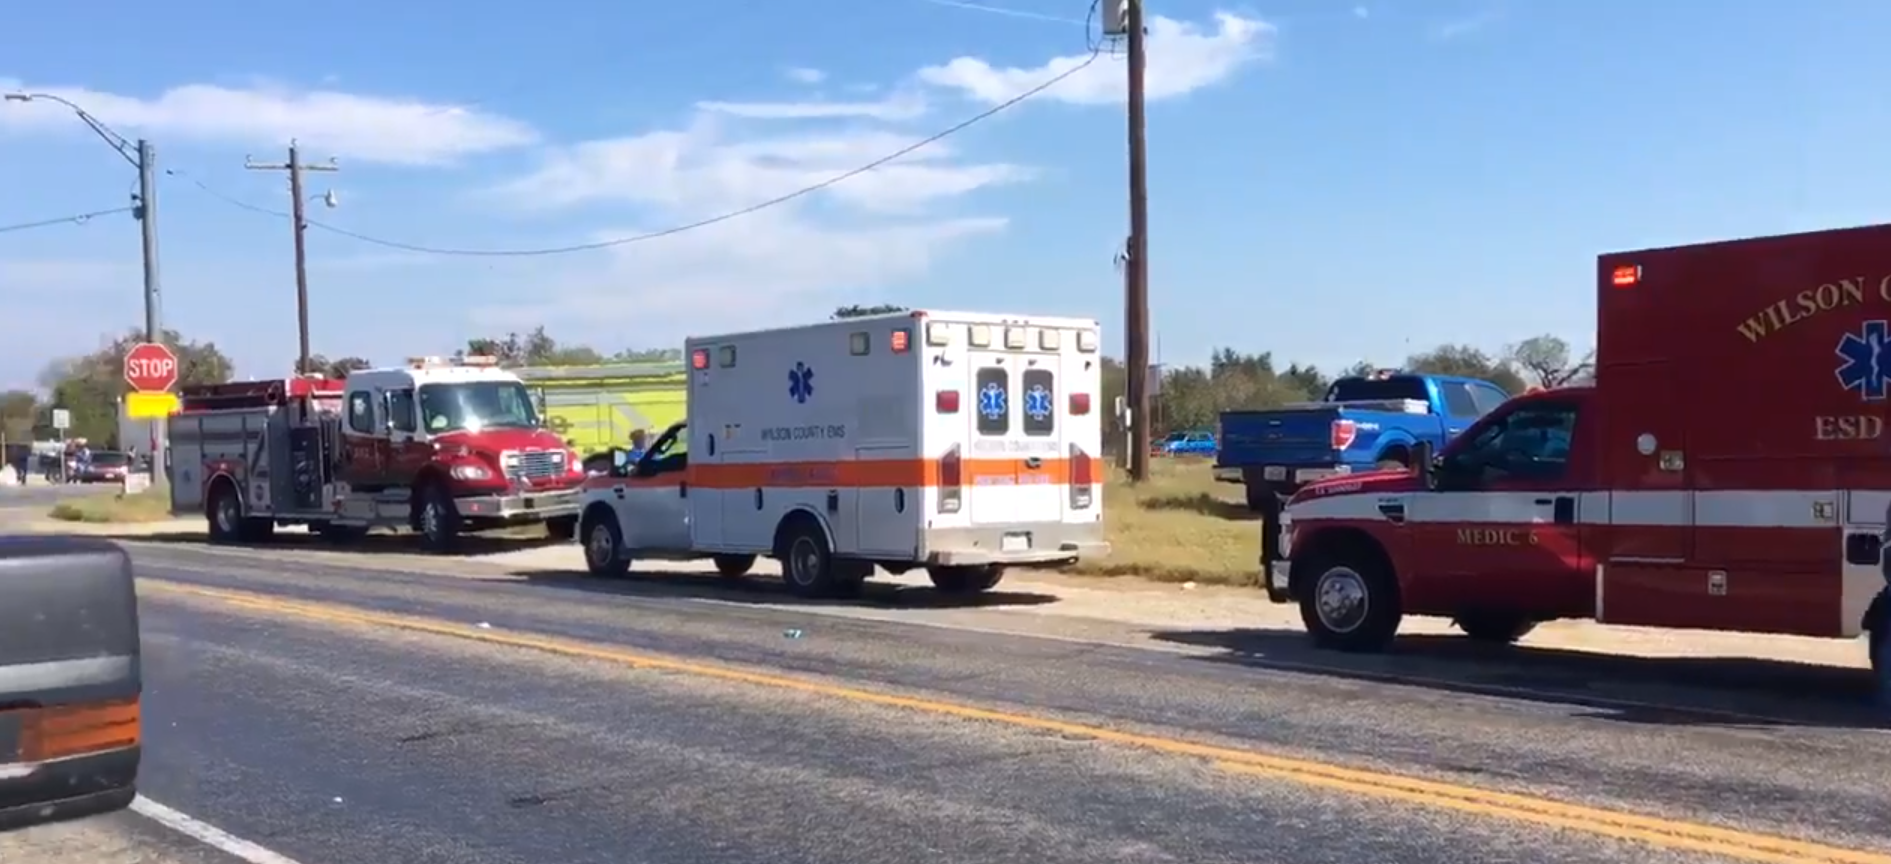 Gunman kills at least 27 at texas church the daily caller emergency vehicles lined up outside the first baptist church in sutherland springs tex malvernweather Image collections